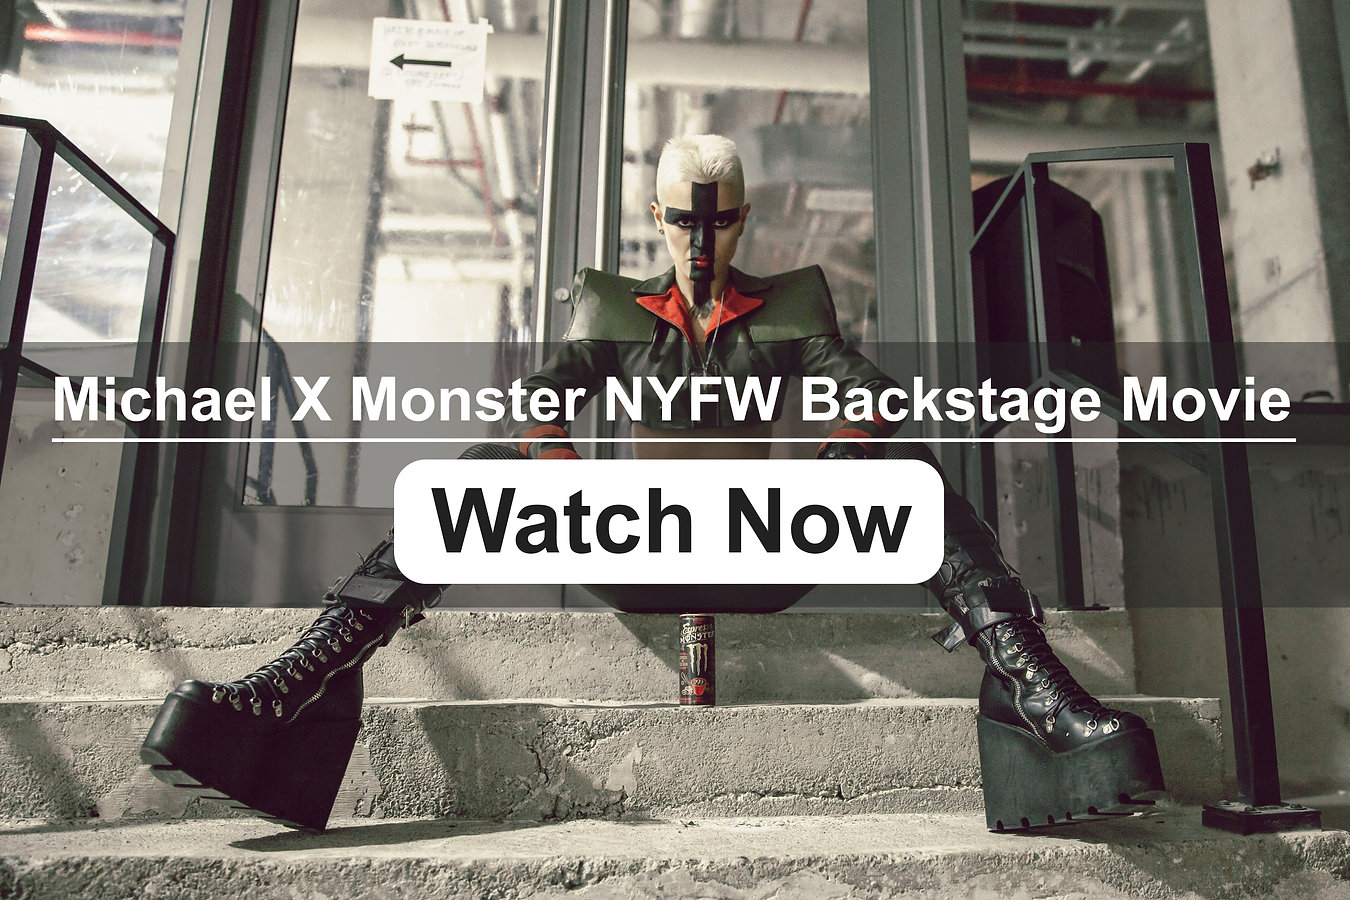 Michael-X-Monster-NYFW-Backstage-Movie0.